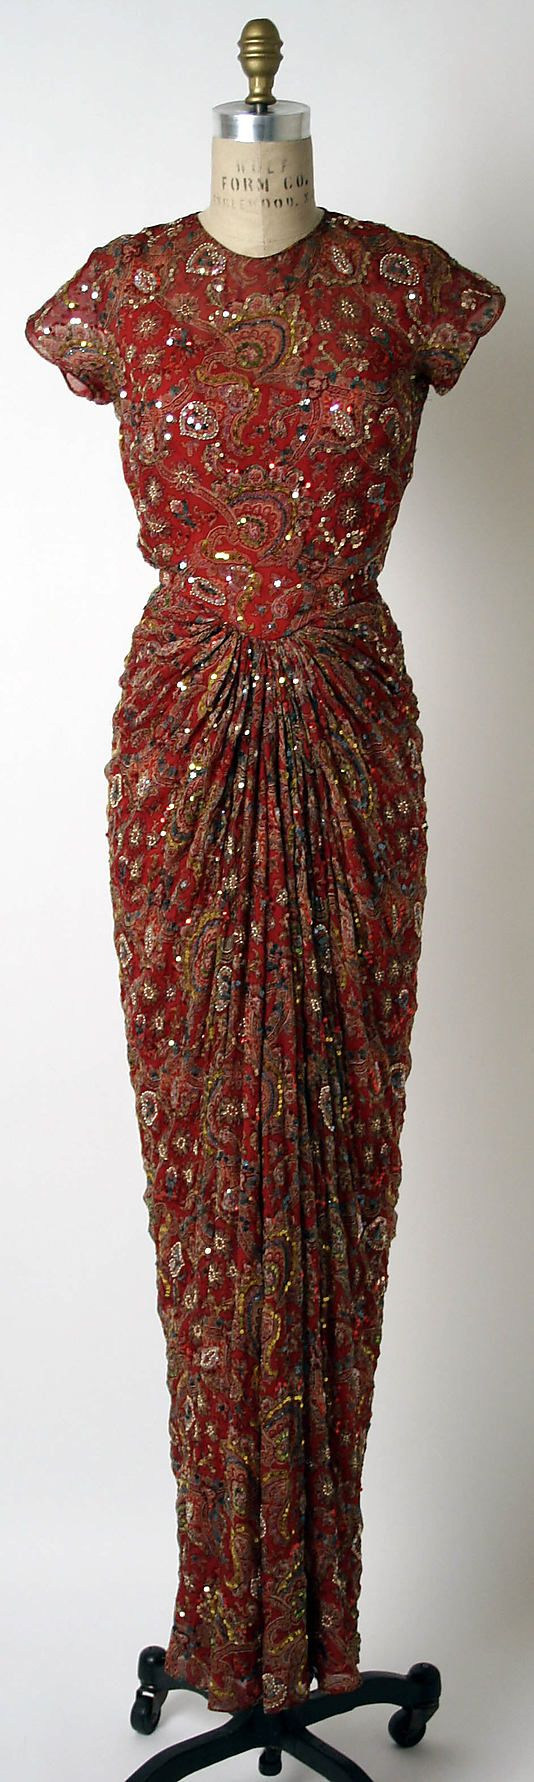 Evening Dress, James Galanos, fall/winter 1957–58, American; silk, synthetic pearl and plastic